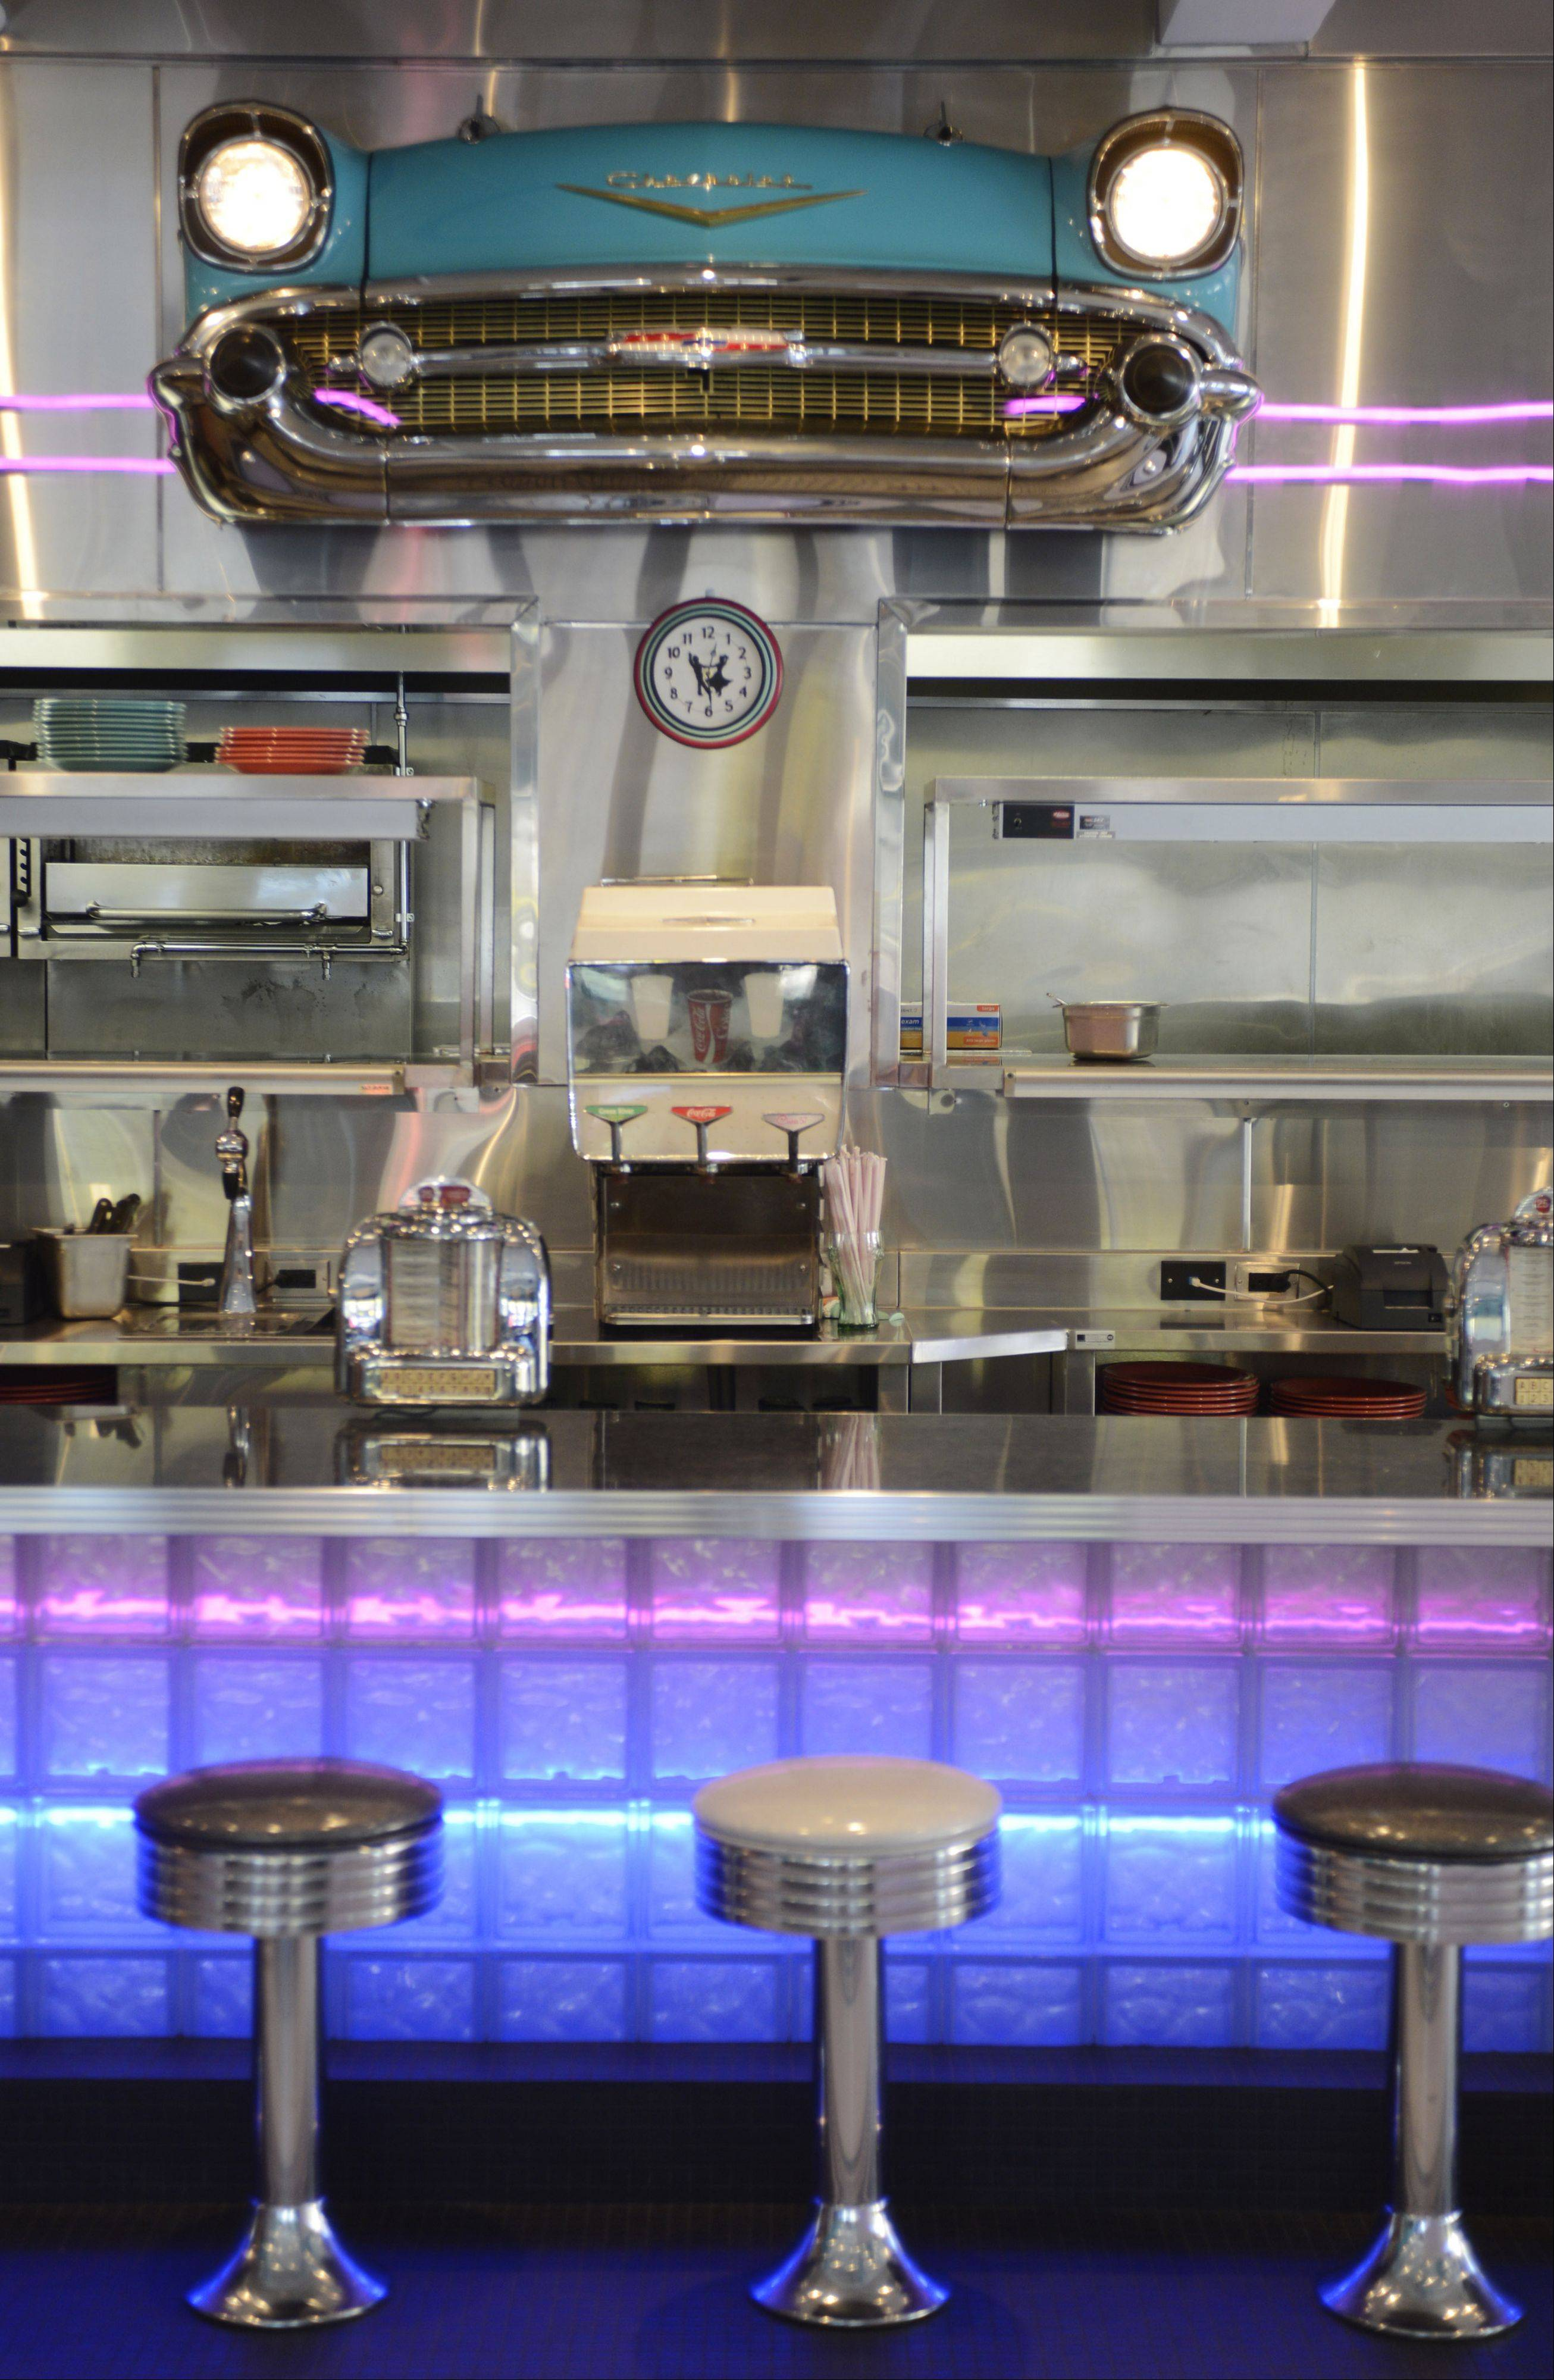 The grill of a Chevy adds to the decor of Circa 57, a 1950s-themed restaurant set to open Oct. 17 in downtown Arlington Heights.